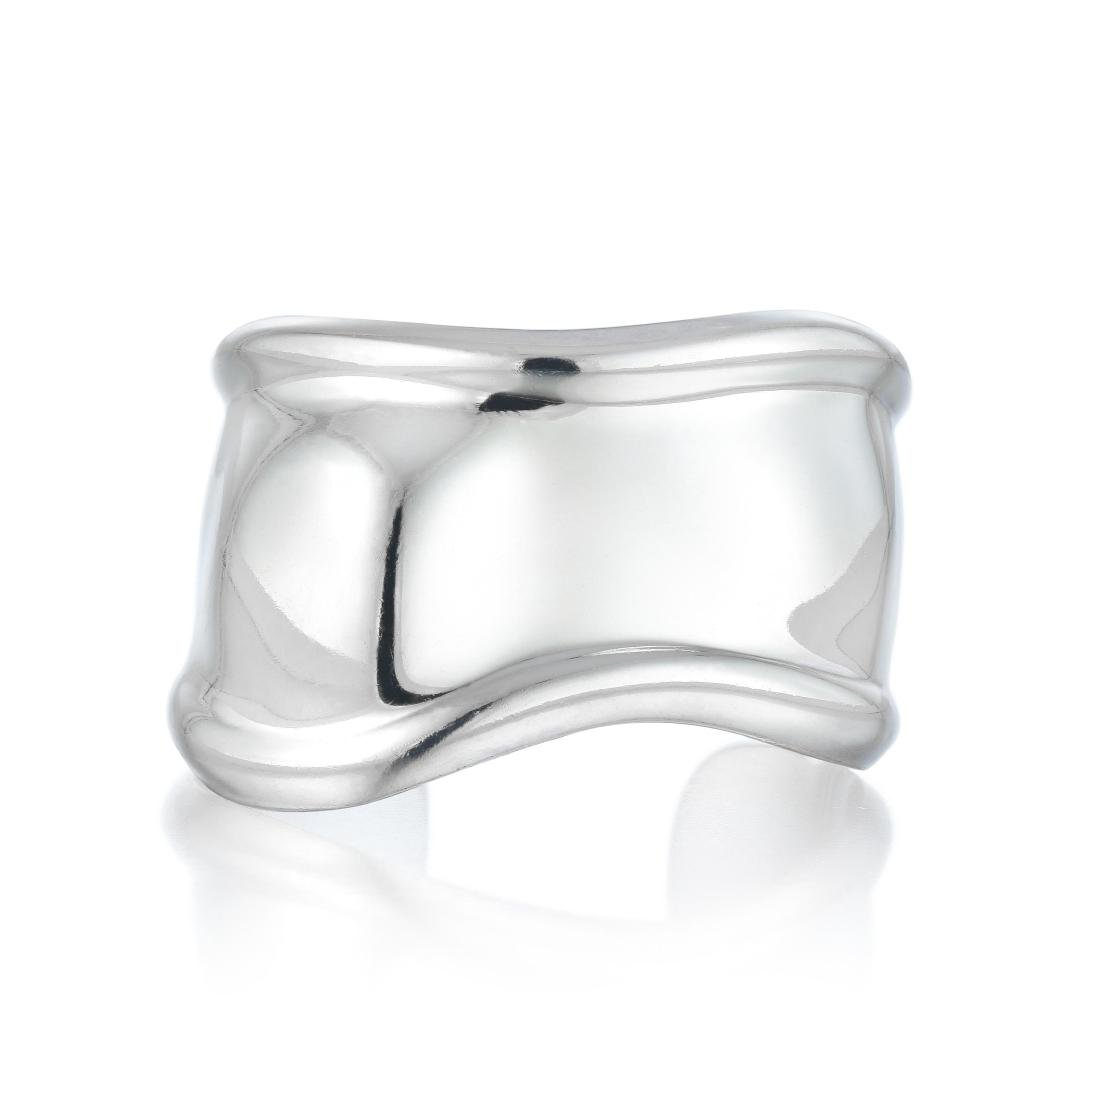 Tiffany & Co. Elsa Peretti Silver Bone Cuff